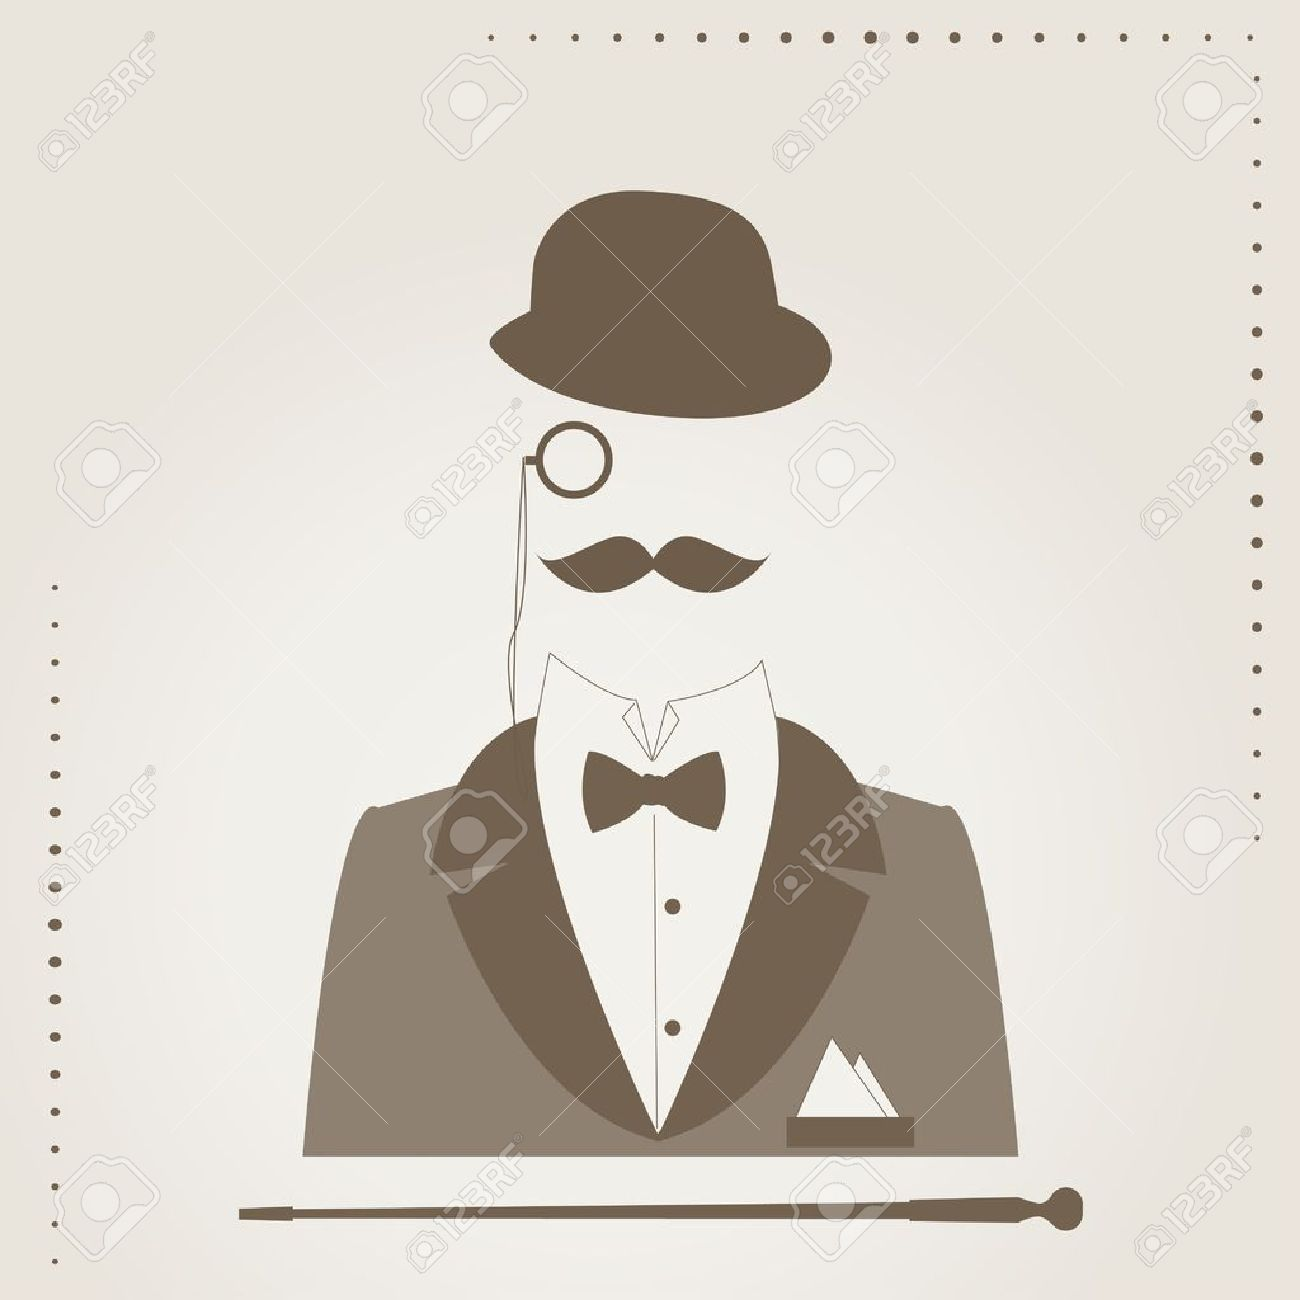 1300x1300 Hand Drawing Illustration Of Of Bowler, Mustaches, Stick, Elegant